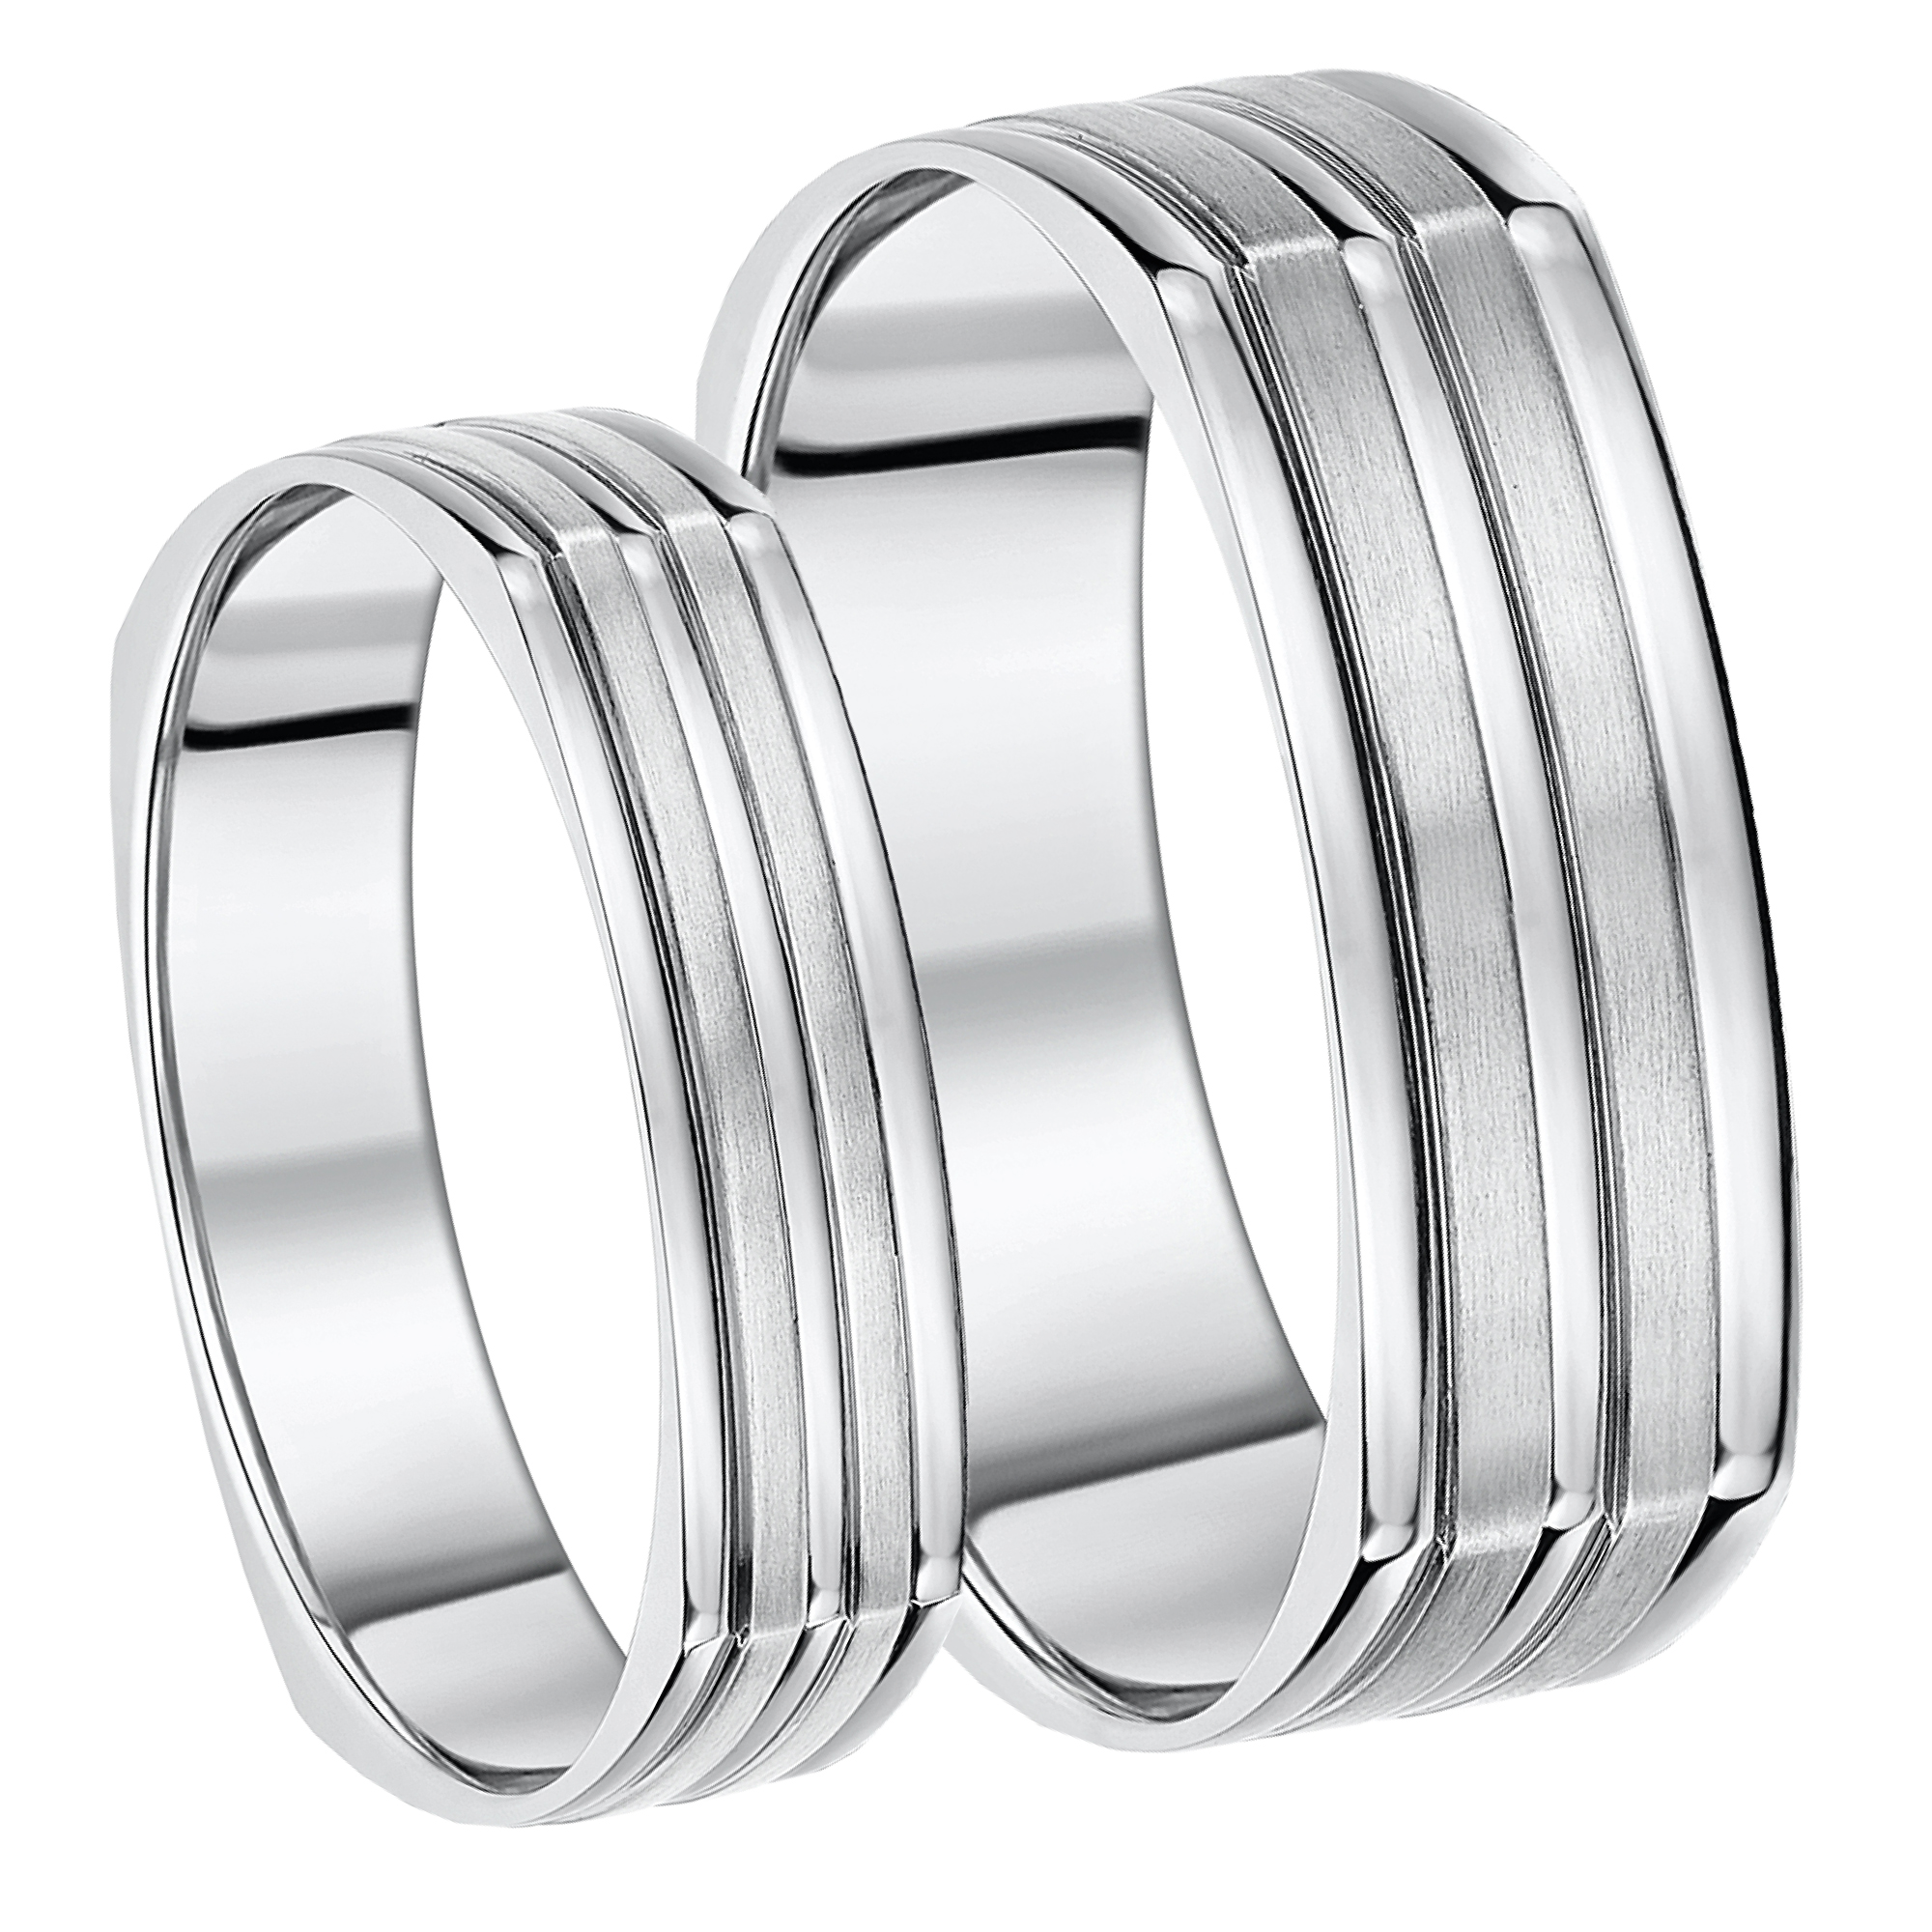 5&7mm His & Hers Titanium Square Shaped Wedding Bands